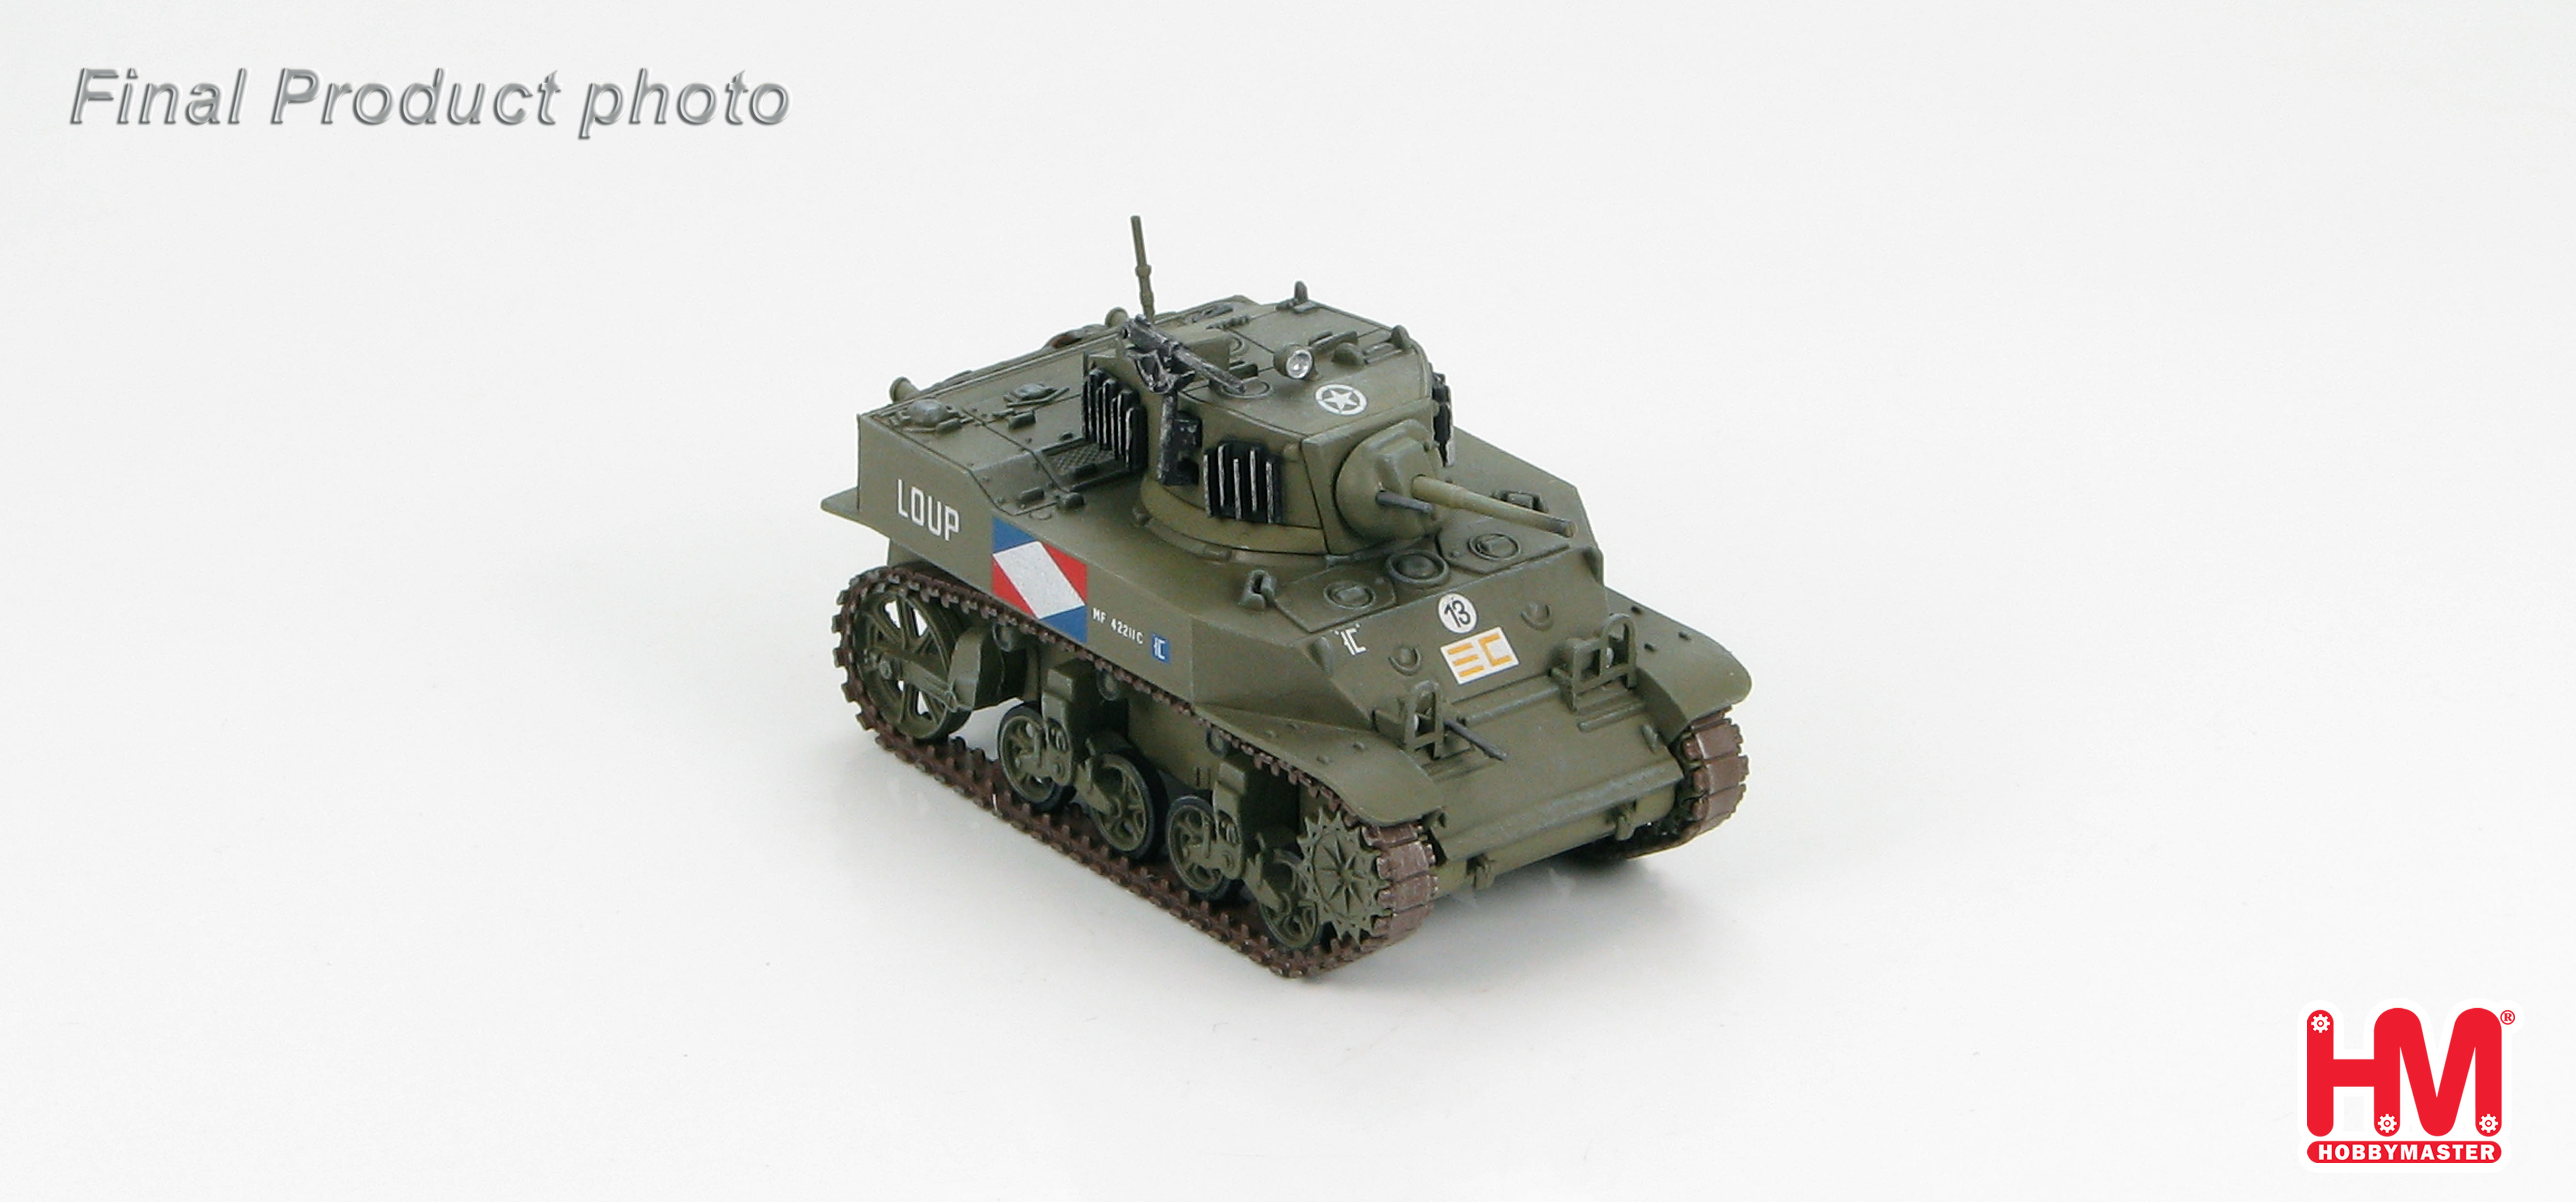 Hobby Master 1 72 Ground Power Series Hg4904 M5a1 Light Tank Free 97 Hyundai Accent Fuse Box French 1st Squadron 2nd Regt Chasseurs Dafrique Armored Div Rhine Crossing